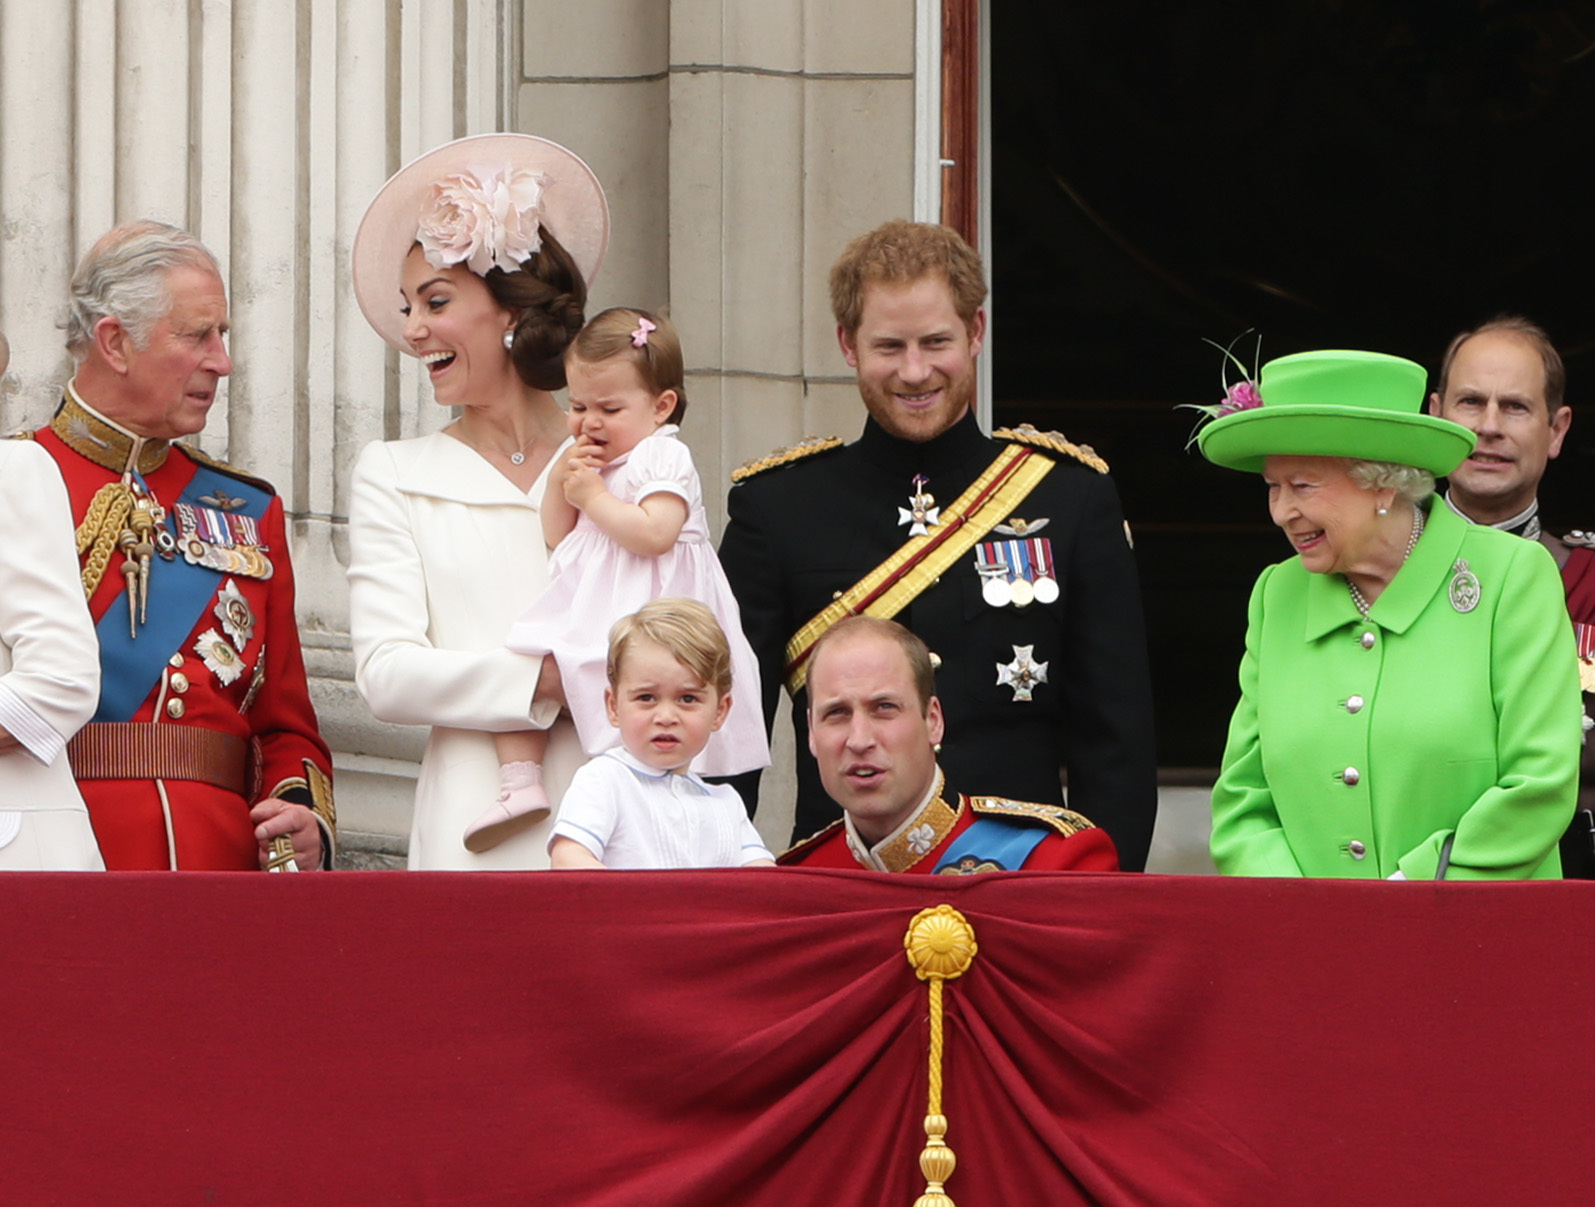 Harry with Kate and William and their children Princess Charlotte and Prince George at Trooping the Colour 2016. [Photo: PA]